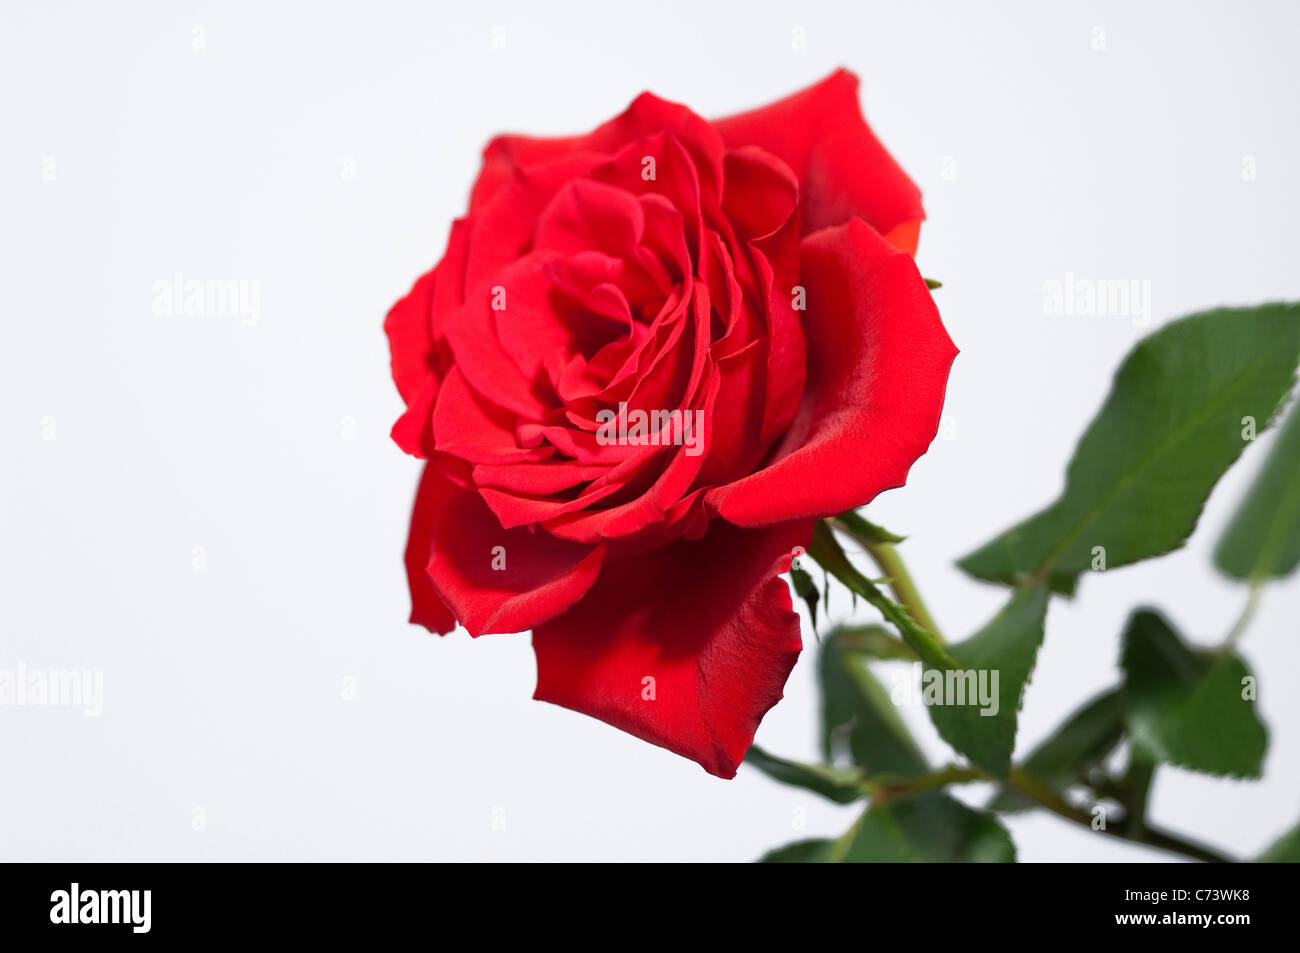 Rose (Rosa sp.), red flower. Studio picture against a white background. - Stock Image